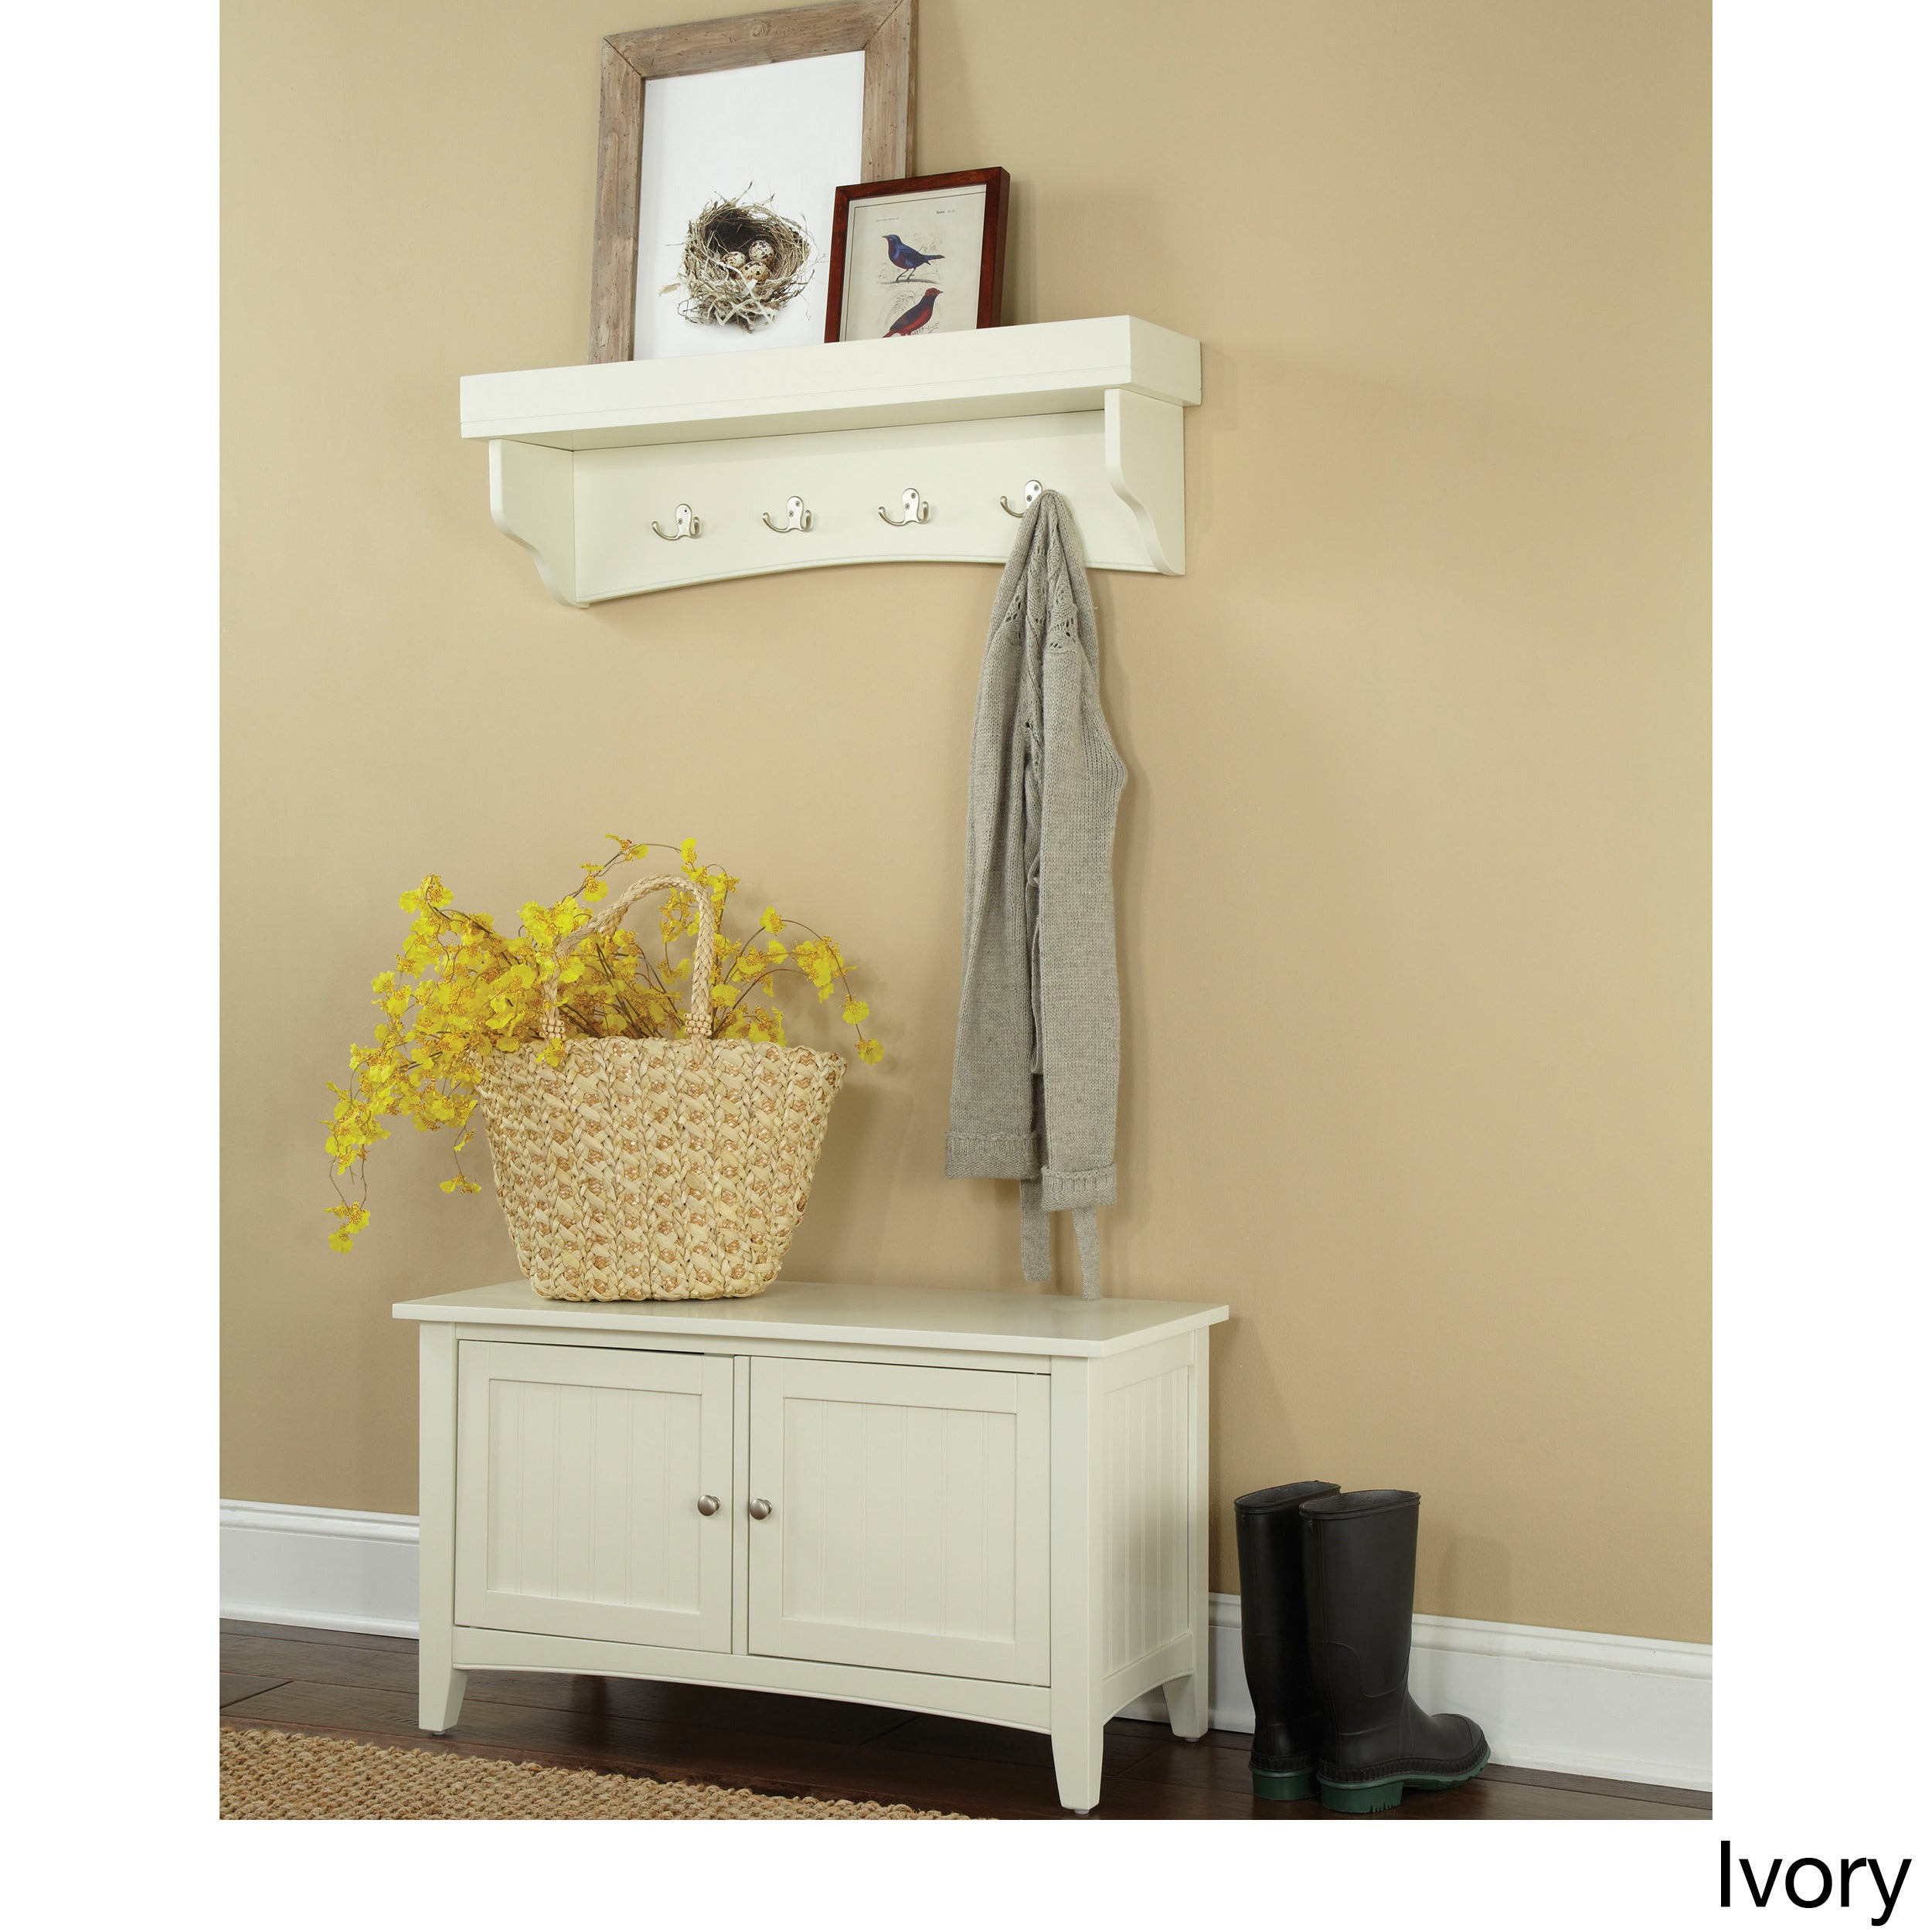 Shop Fair Haven Tray Shelf Coat Hook and Storage Bench Set - Free ...